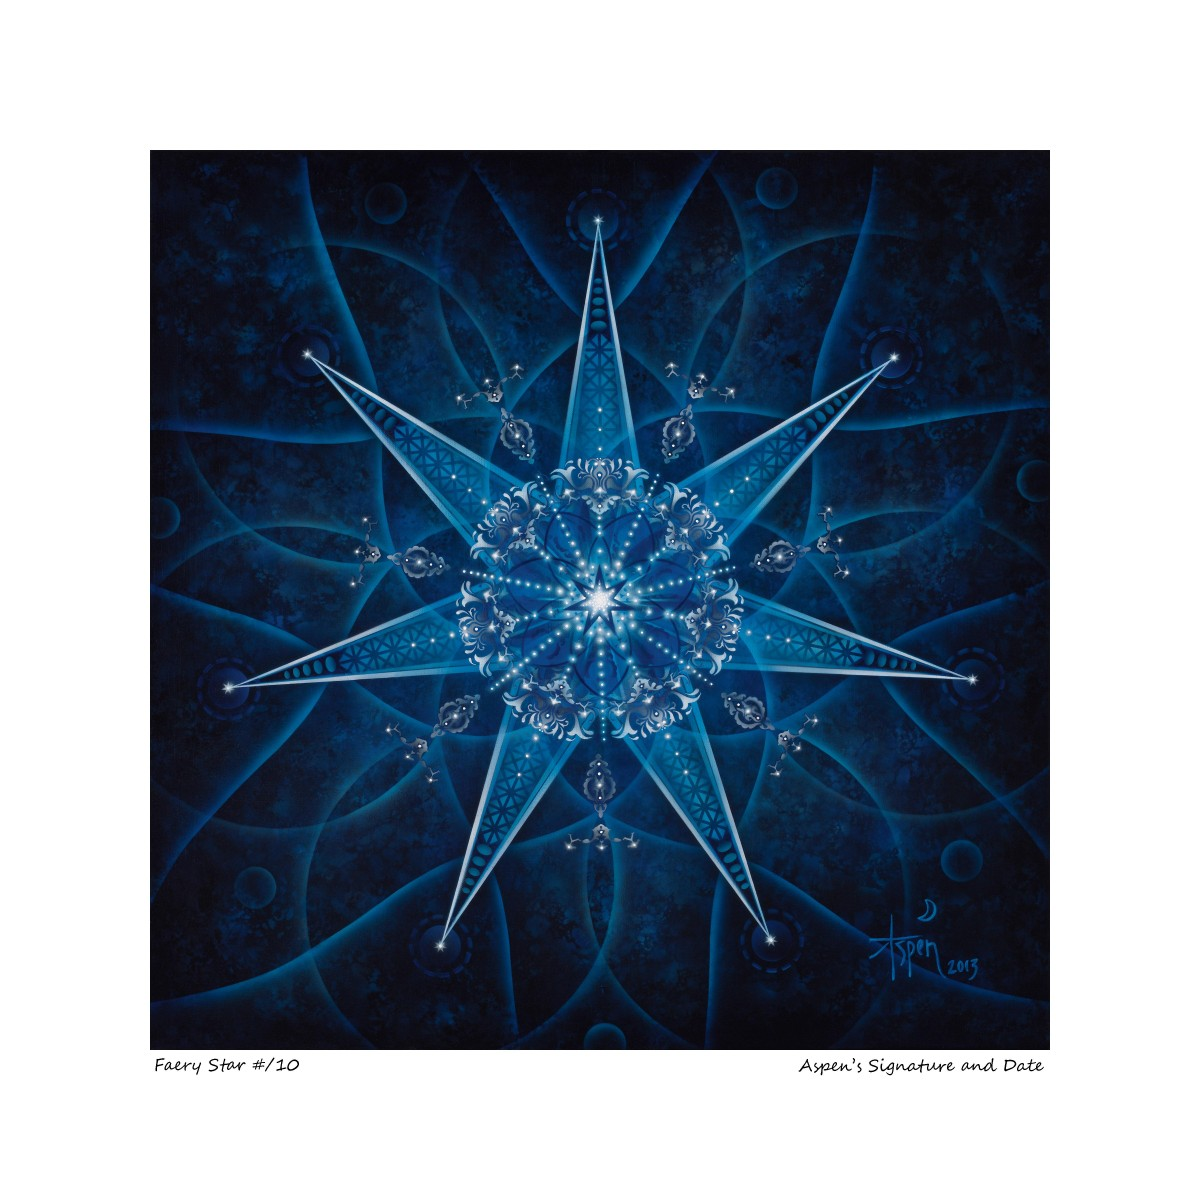 Faery Star Limited Edition Giclée on Fine Art Paper – Framed